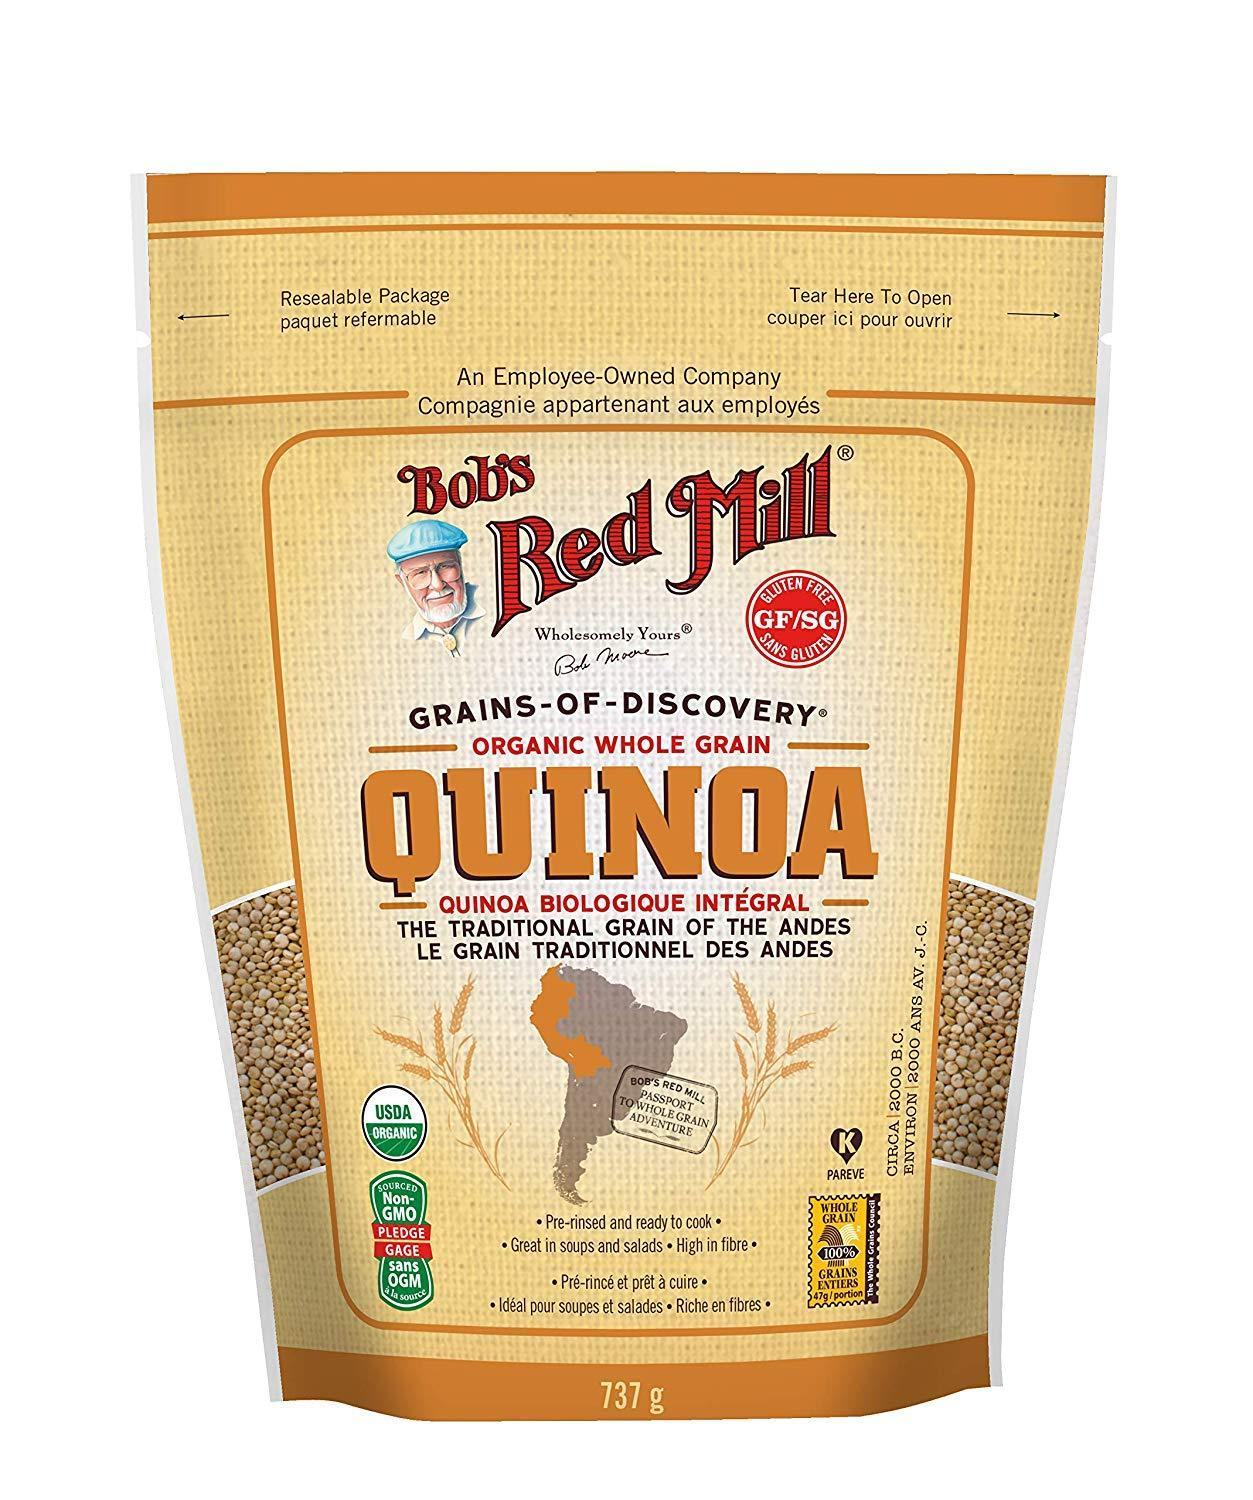 Food & Drink - Bob's Red Mill - Organic Quinoa, 737g